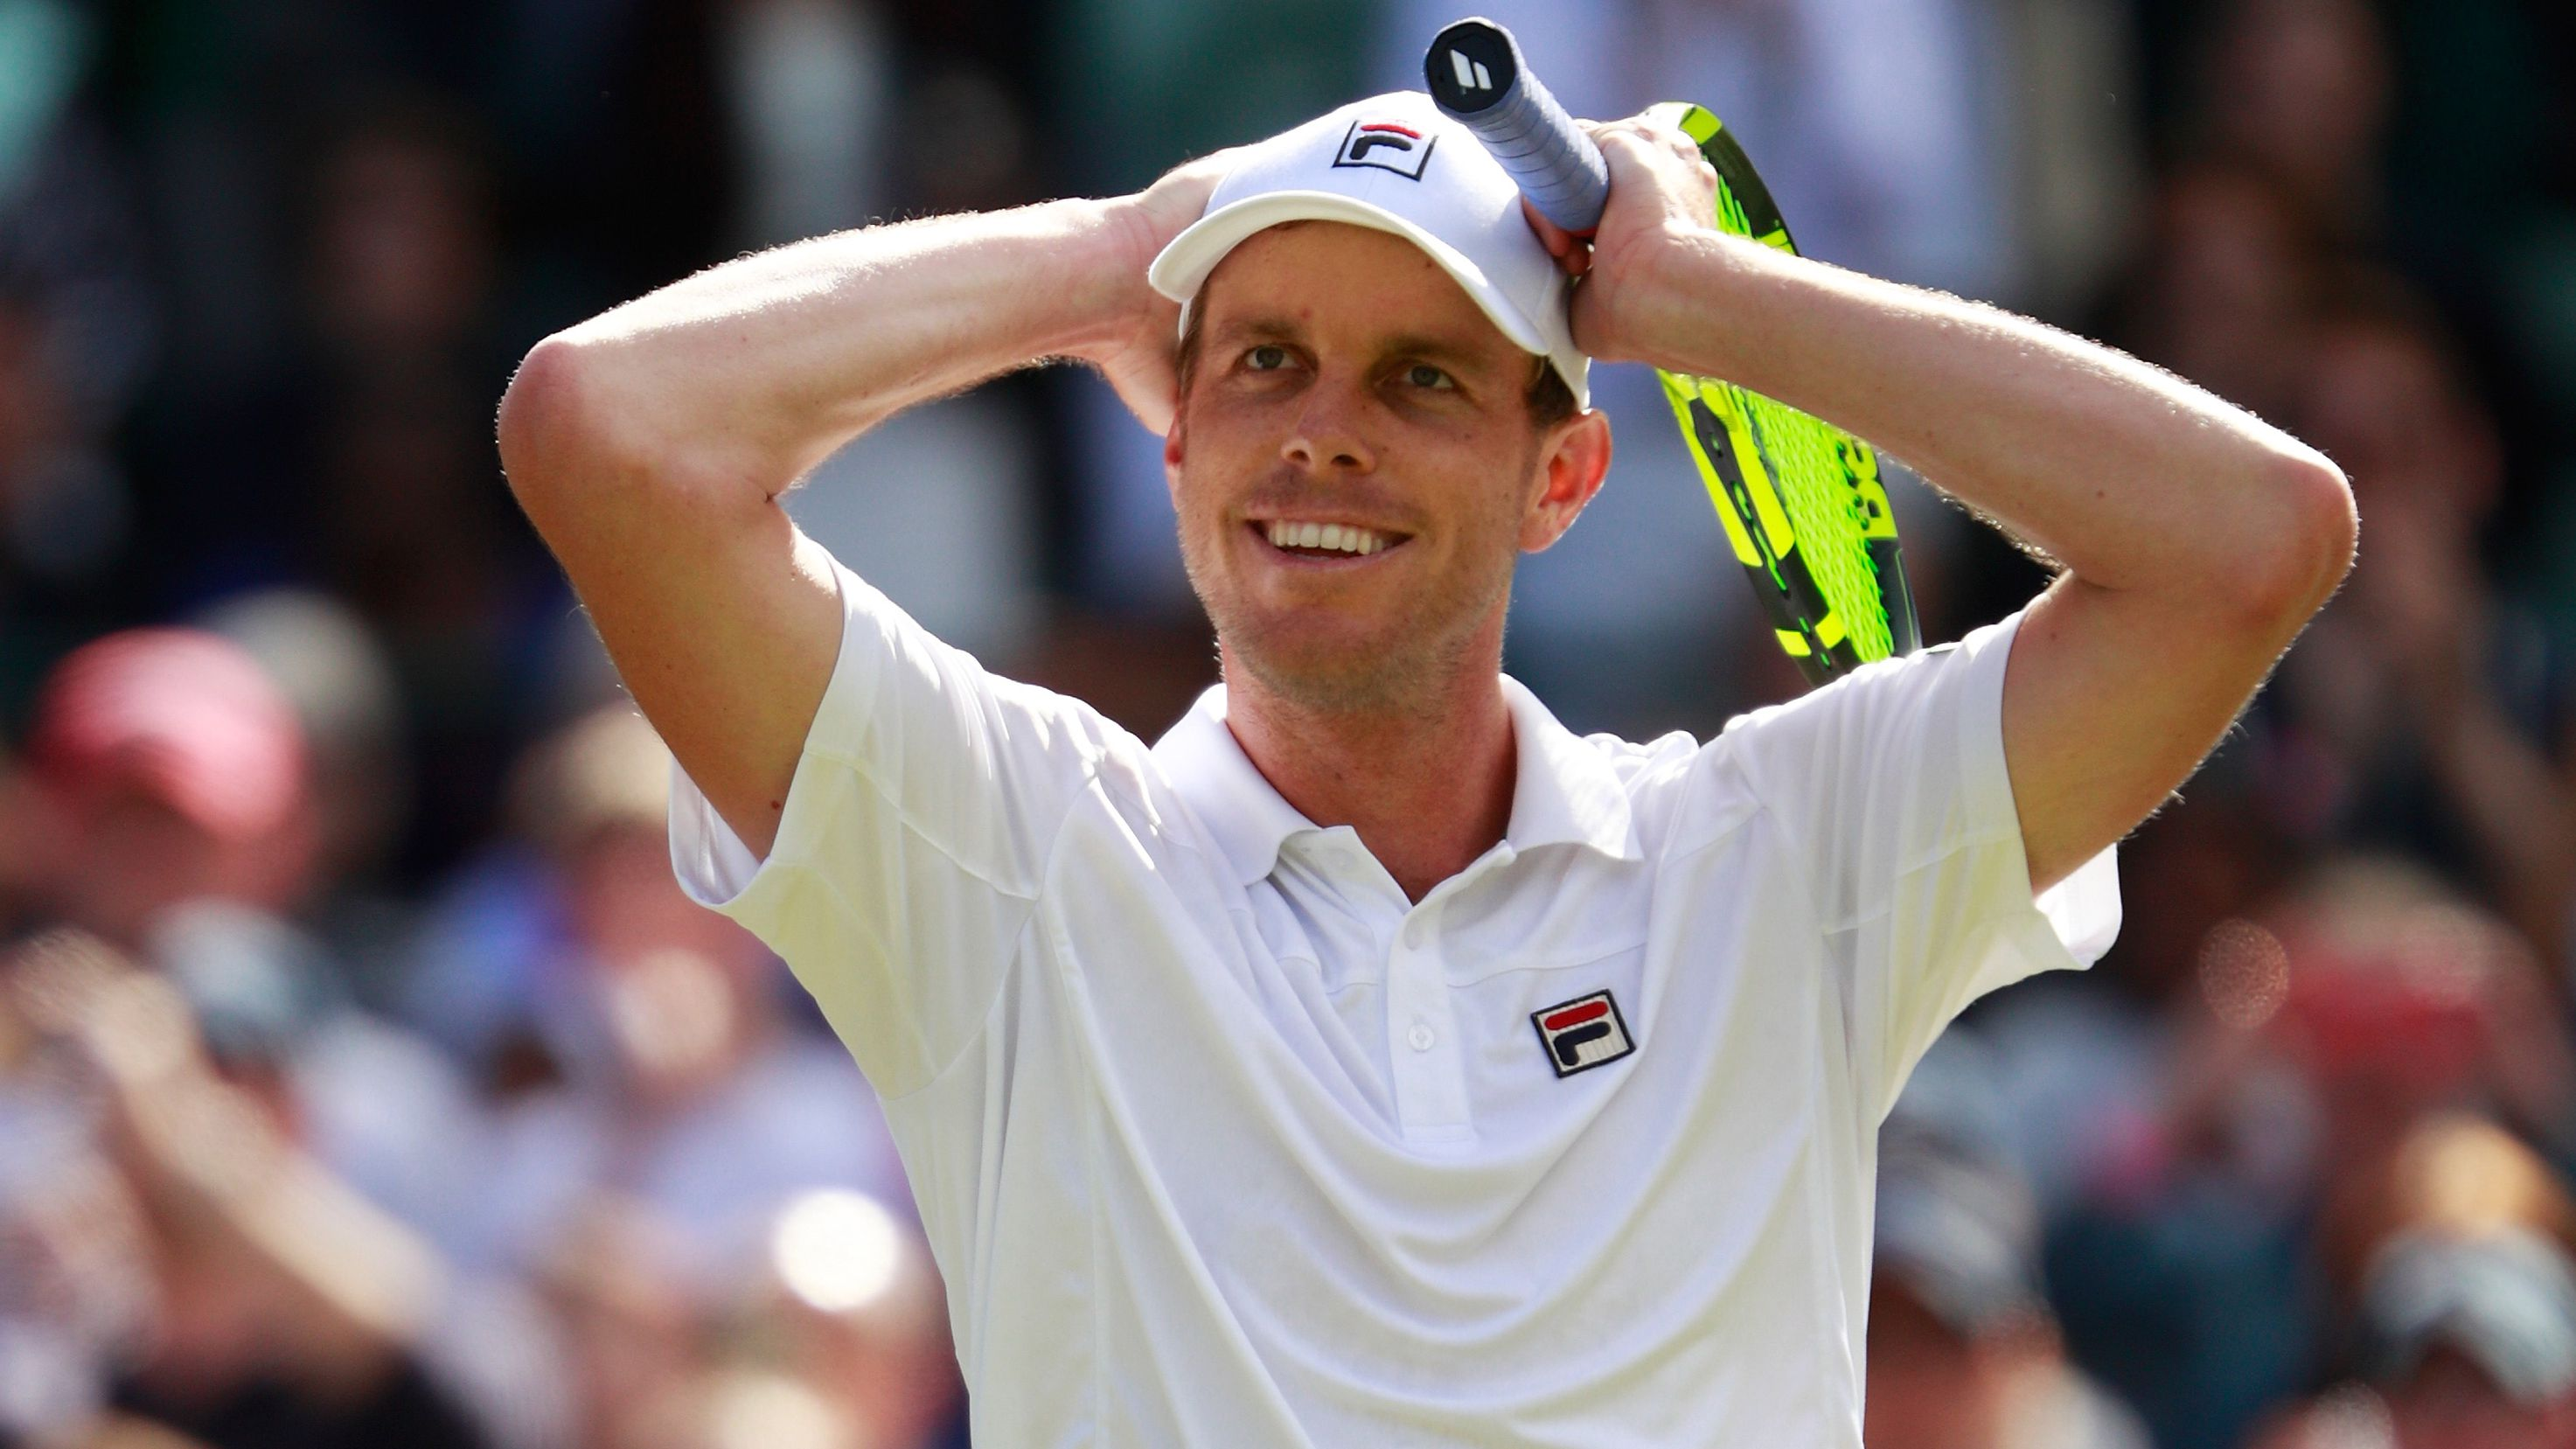 Sam Querrey reacts during a match at Wimbledon.